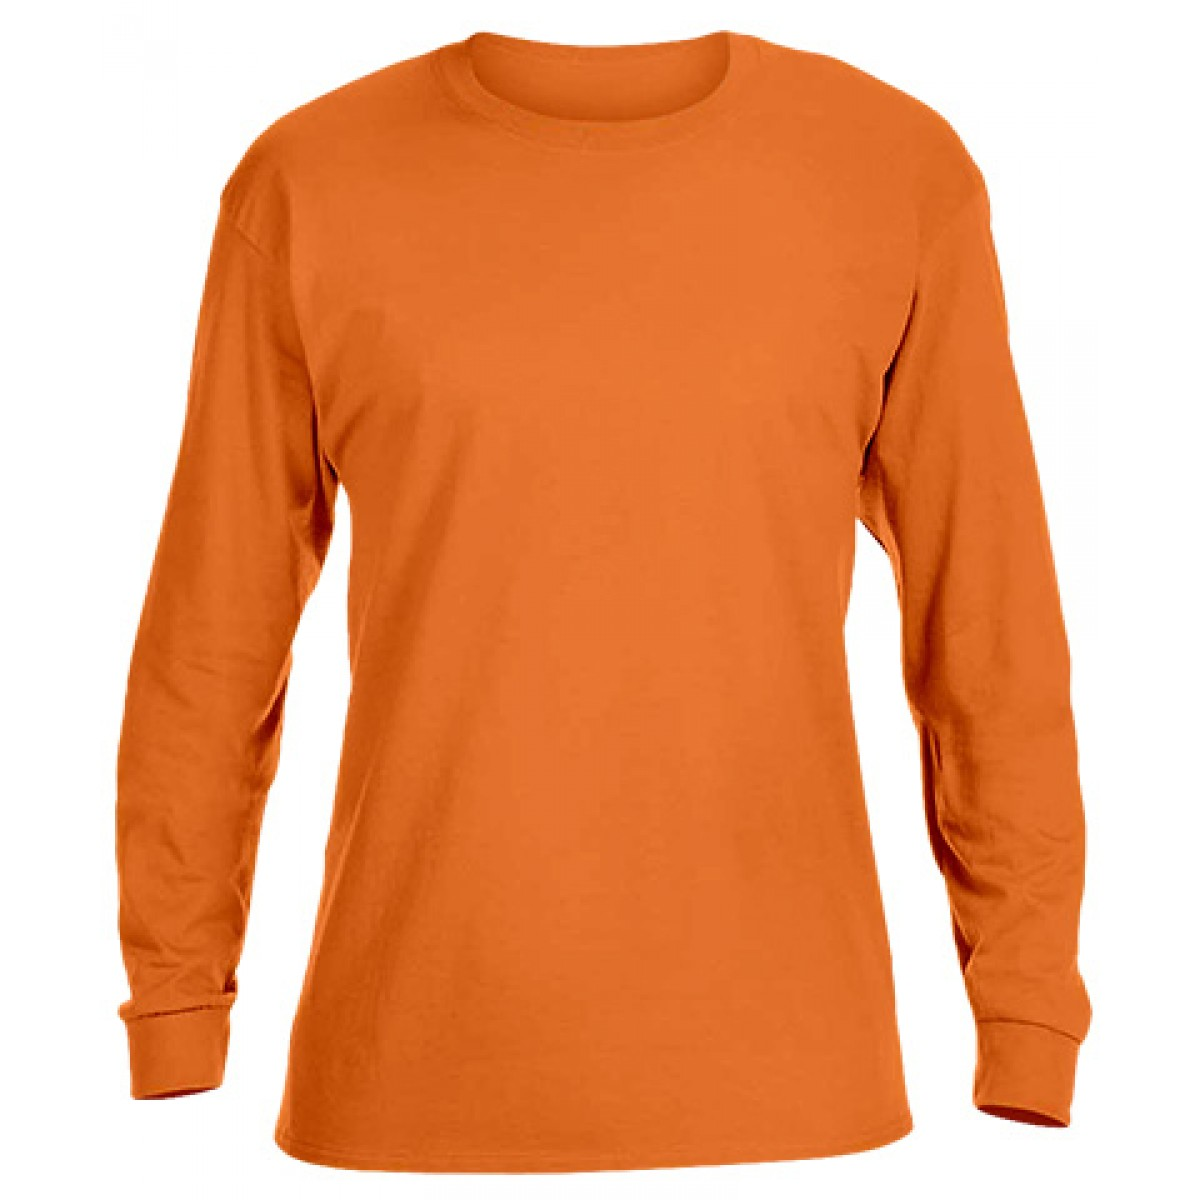 Basic Long Sleeve Crew Neck -Orange-YM